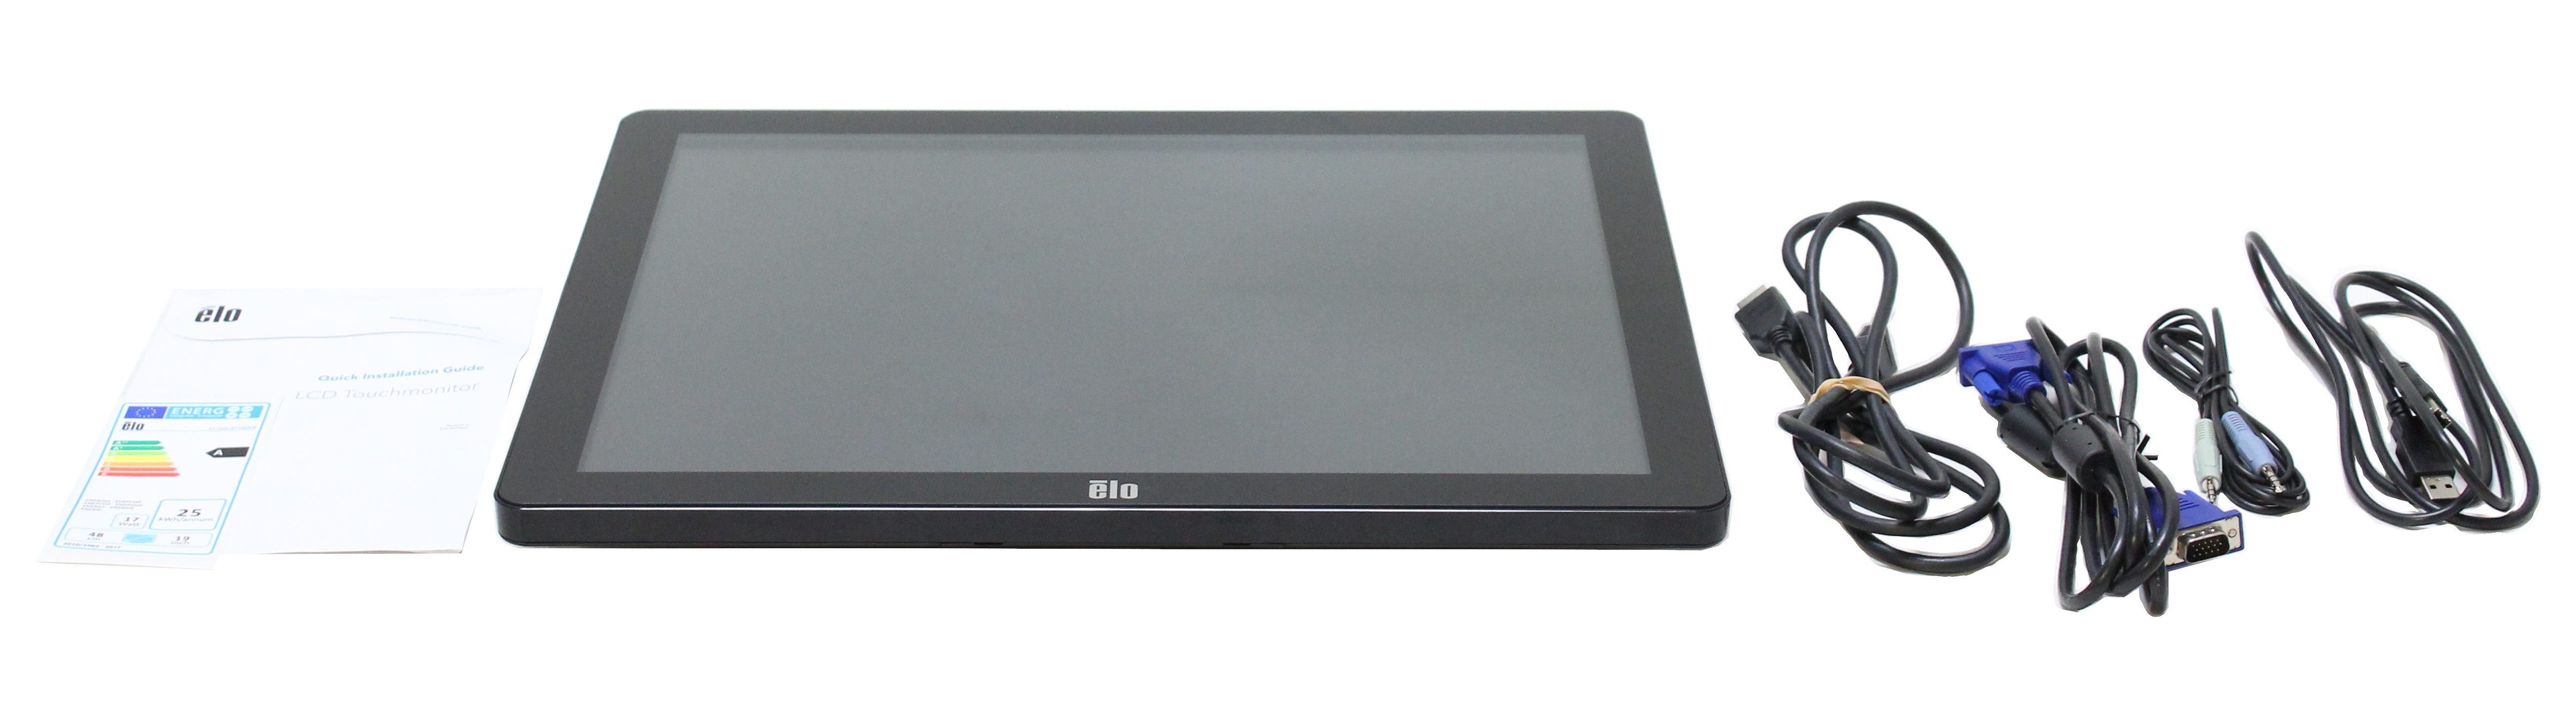 "Elo 1903LM LCD Monitor Black 19"" Touchscreen E349829"